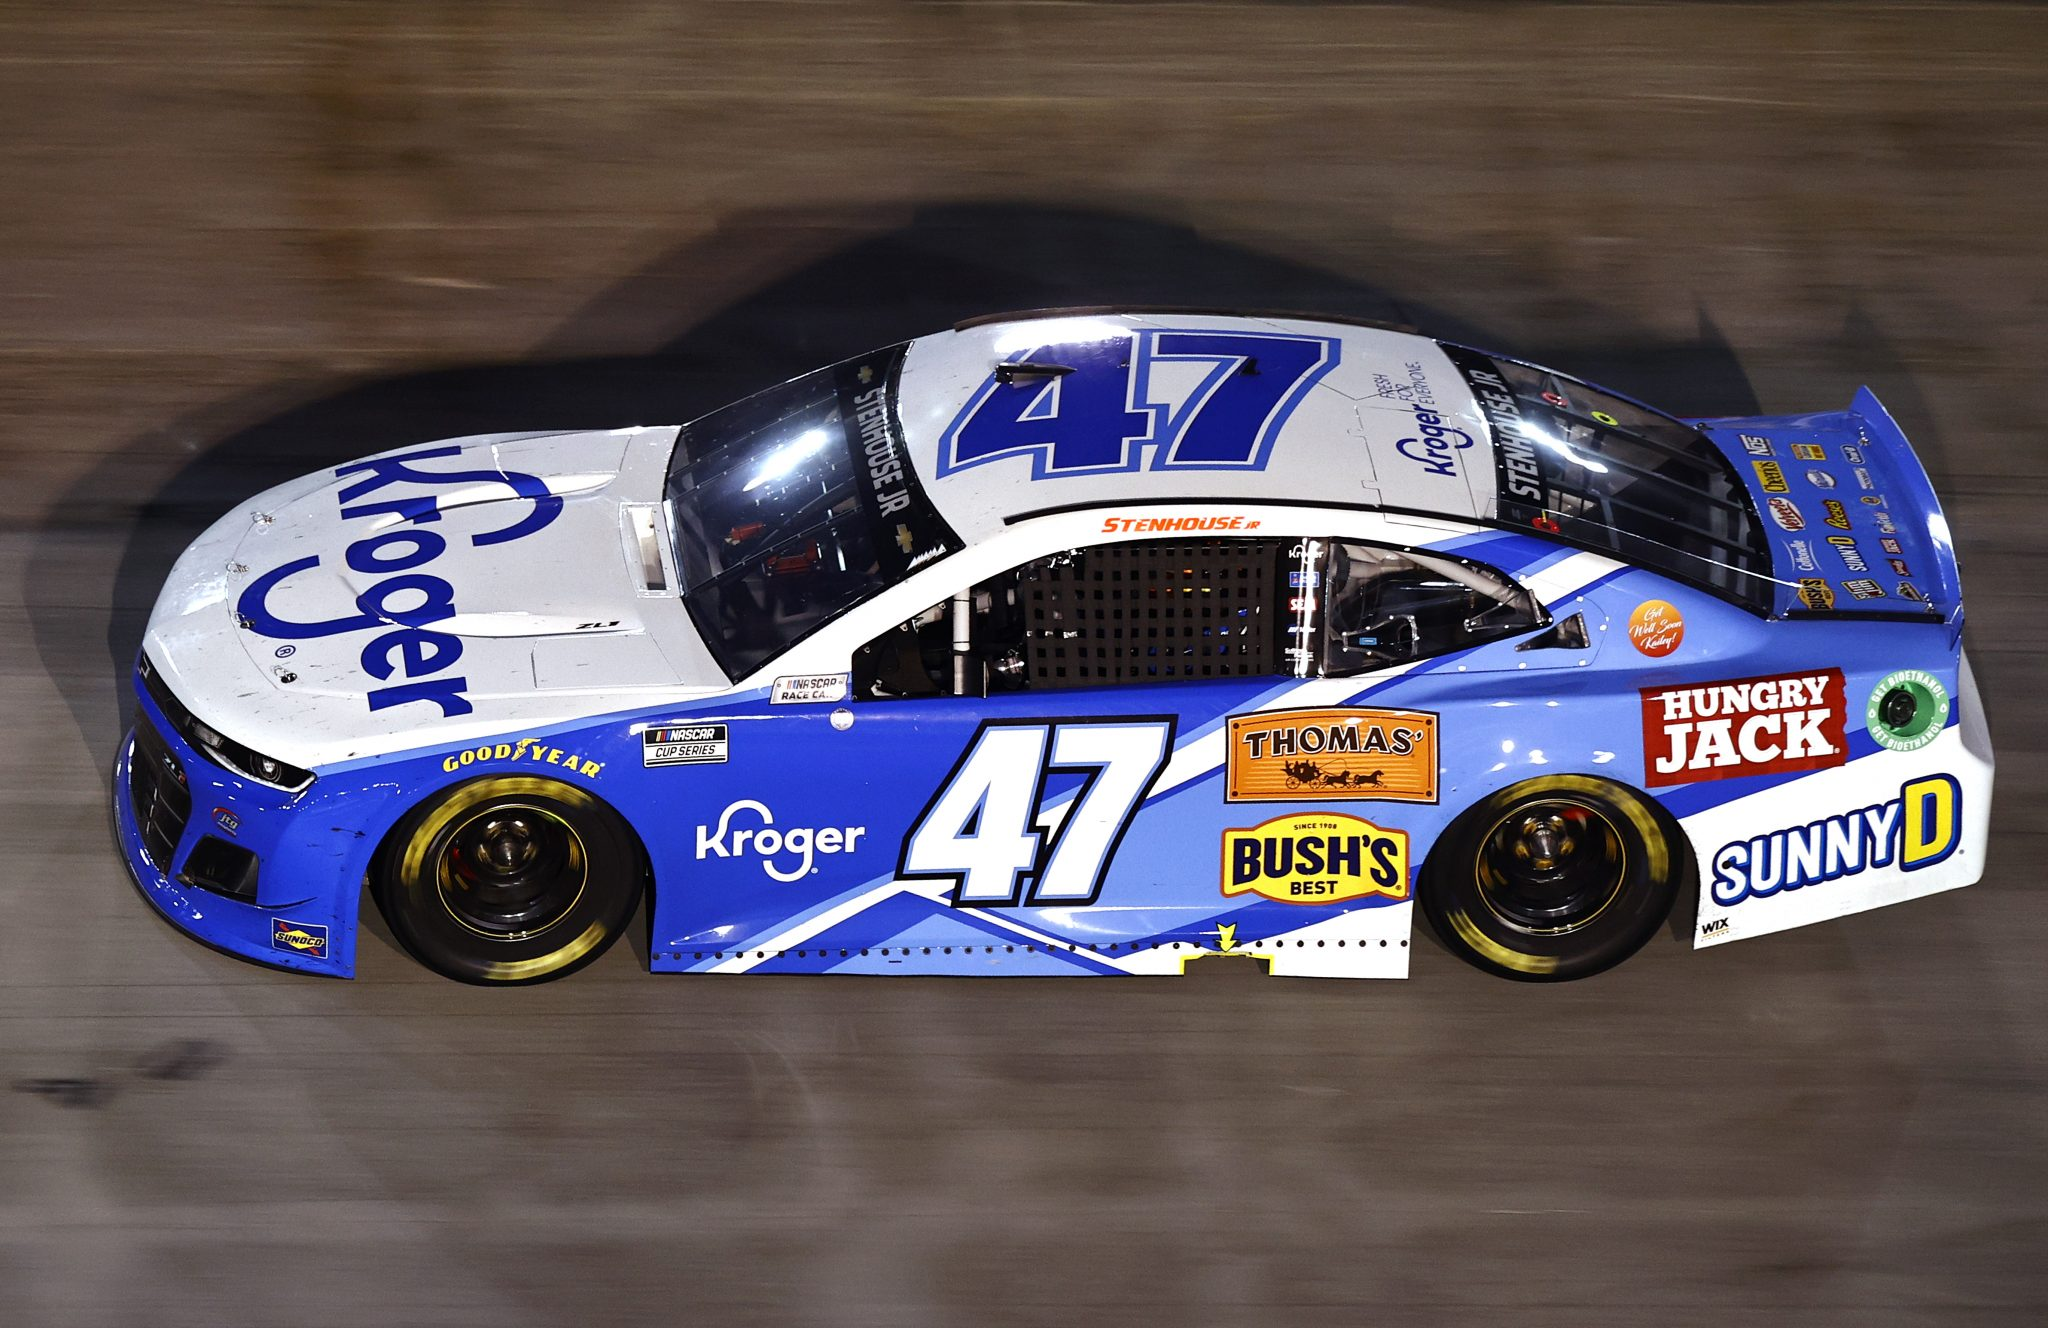 BRISTOL, TENNESSEE - SEPTEMBER 18: Ricky Stenhouse Jr., driver of the #47 Kroger Chevrolet, drives during the NASCAR Cup Series Bass Pro Shops Night Race at Bristol Motor Speedway on September 18, 2021 in Bristol, Tennessee. (Photo by Jared C. Tilton/Getty Images)   Getty Images